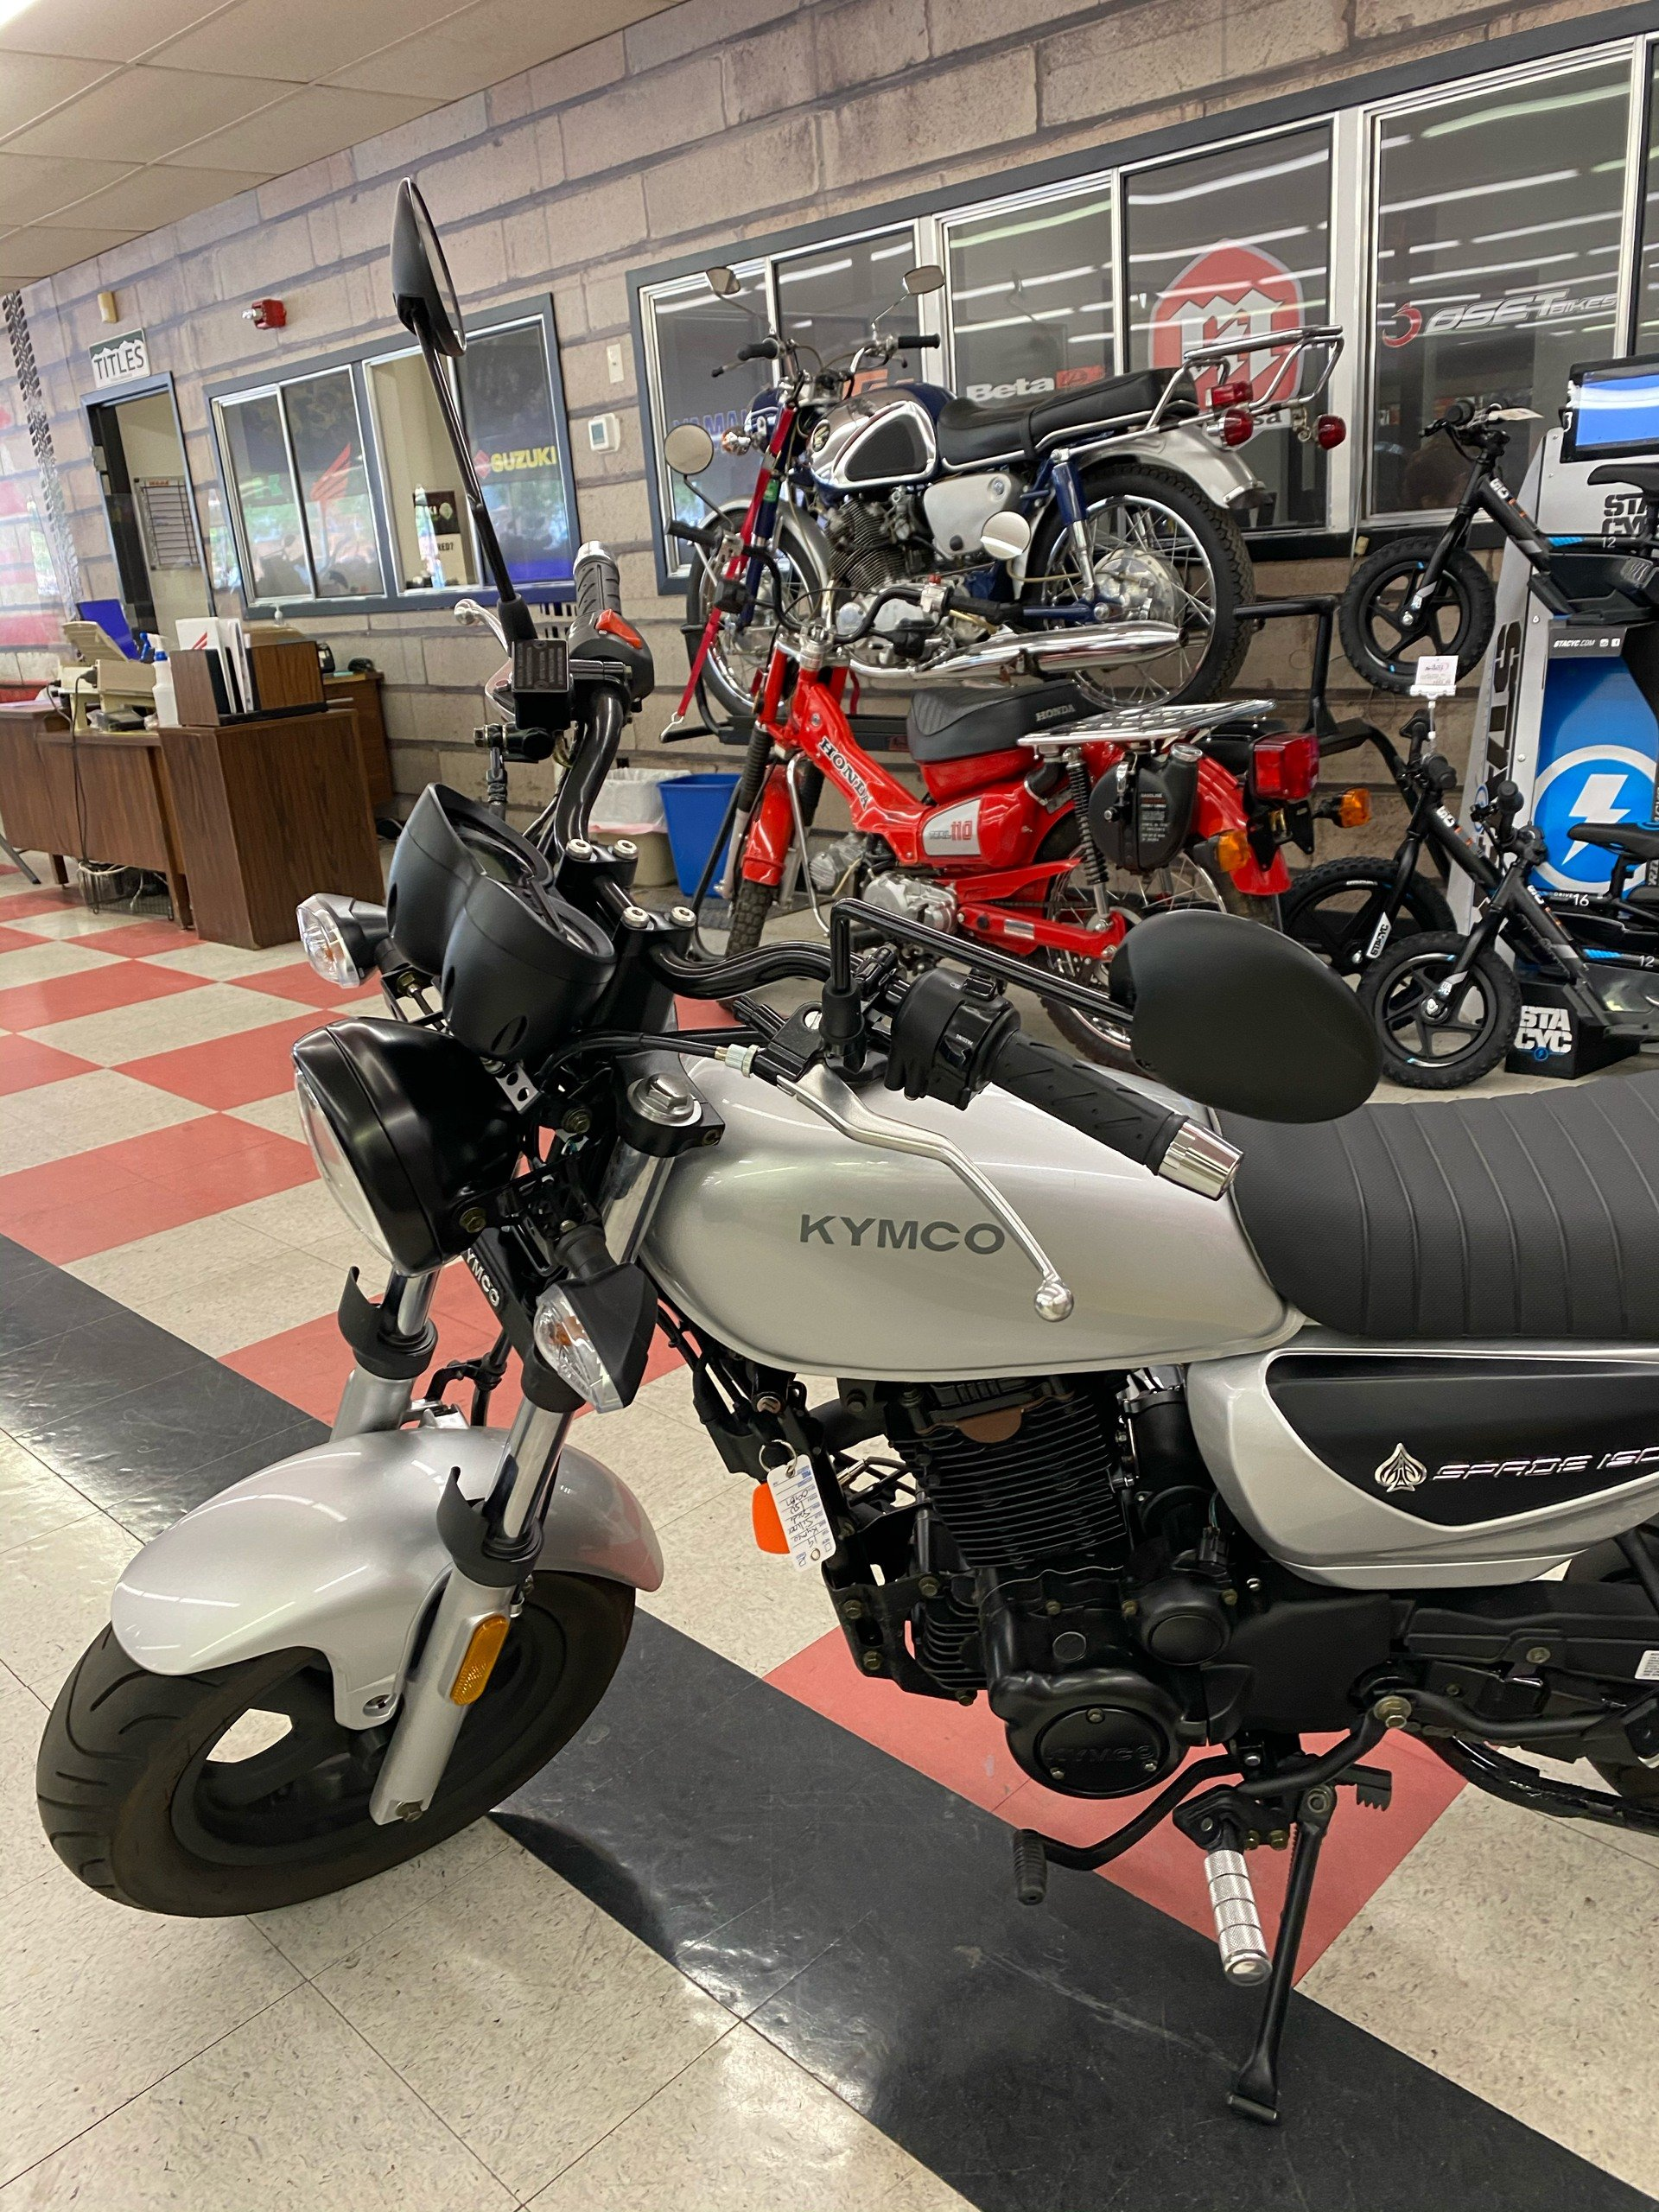 2019 Kymco Spade 150 in Colorado Springs, Colorado - Photo 3